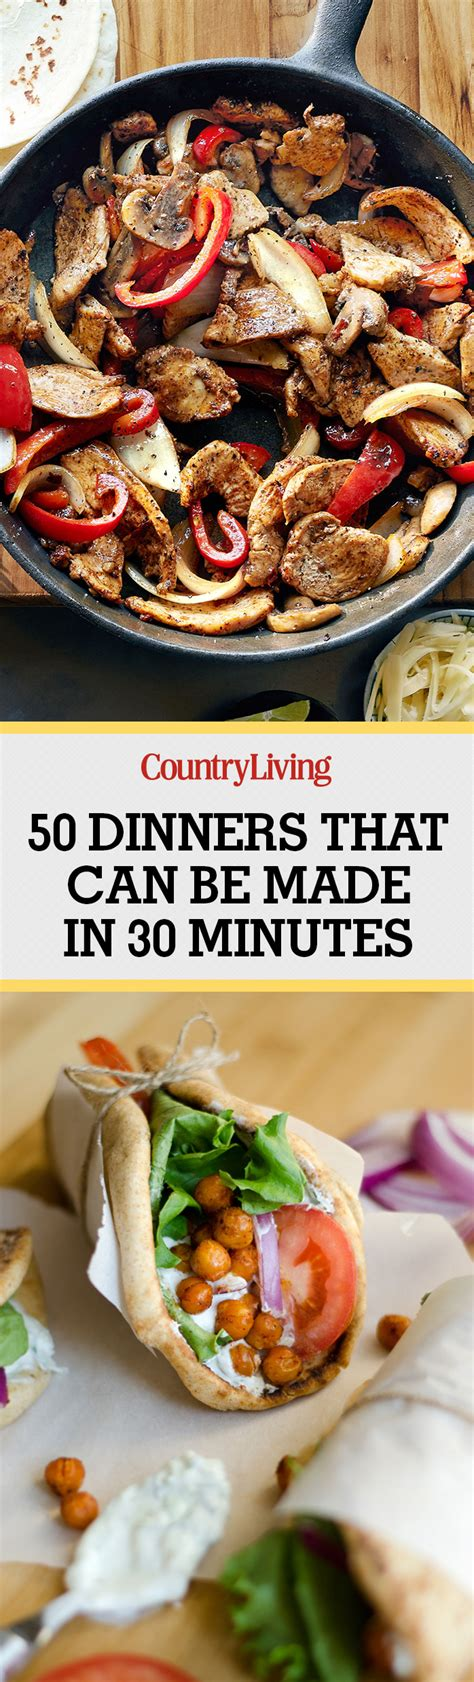 90 quick and easy dinners best recipes for 30 minute meals